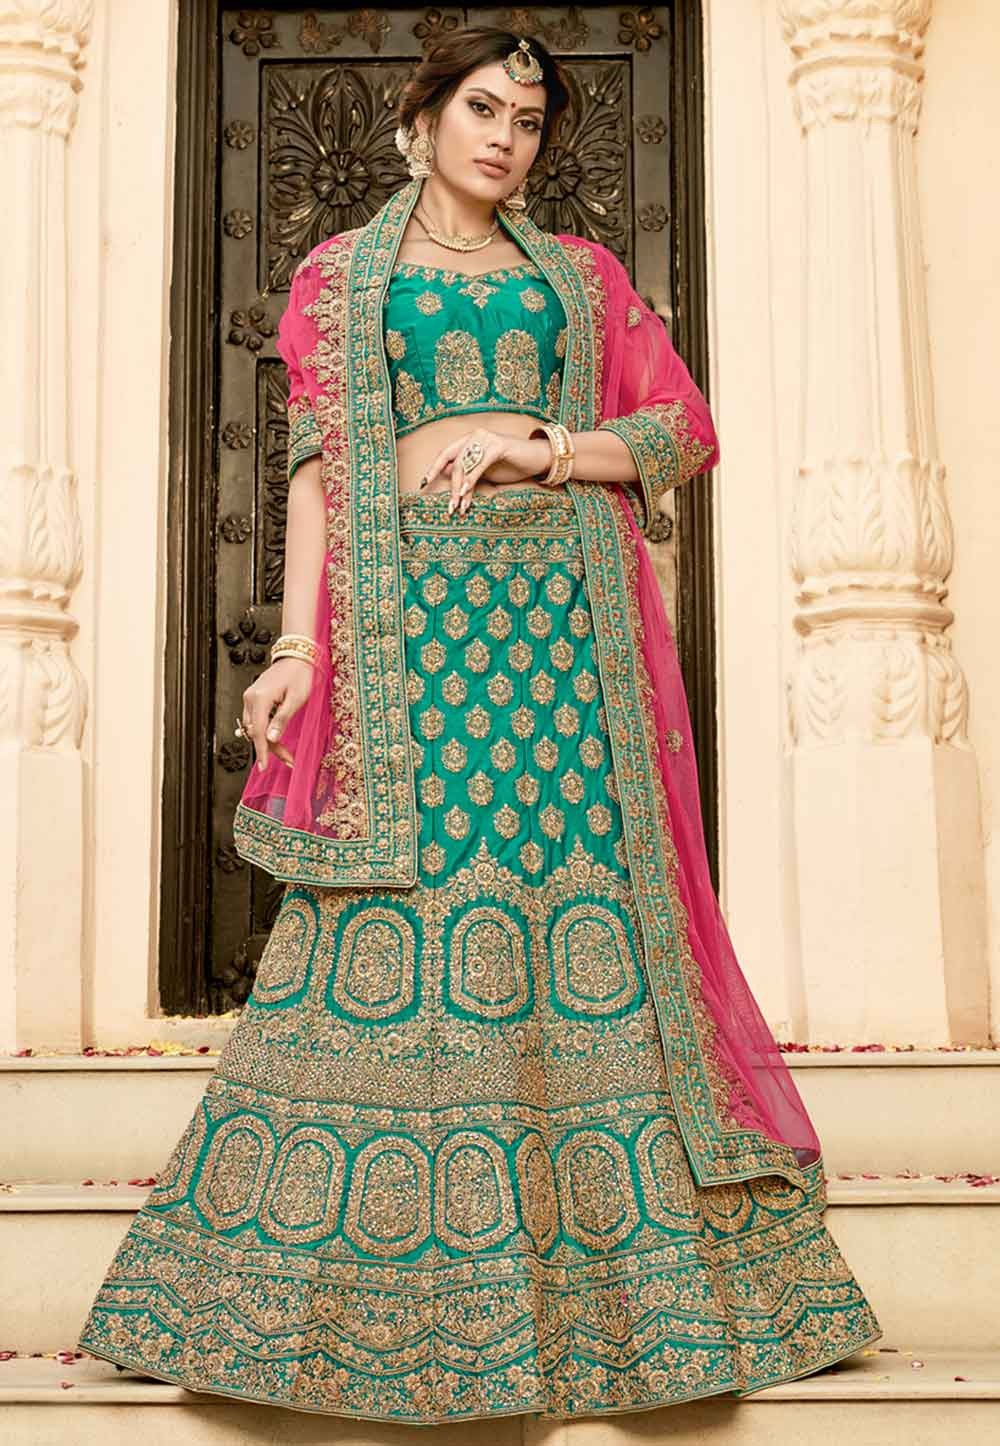 Buy designer wedding lehengas in green colour online